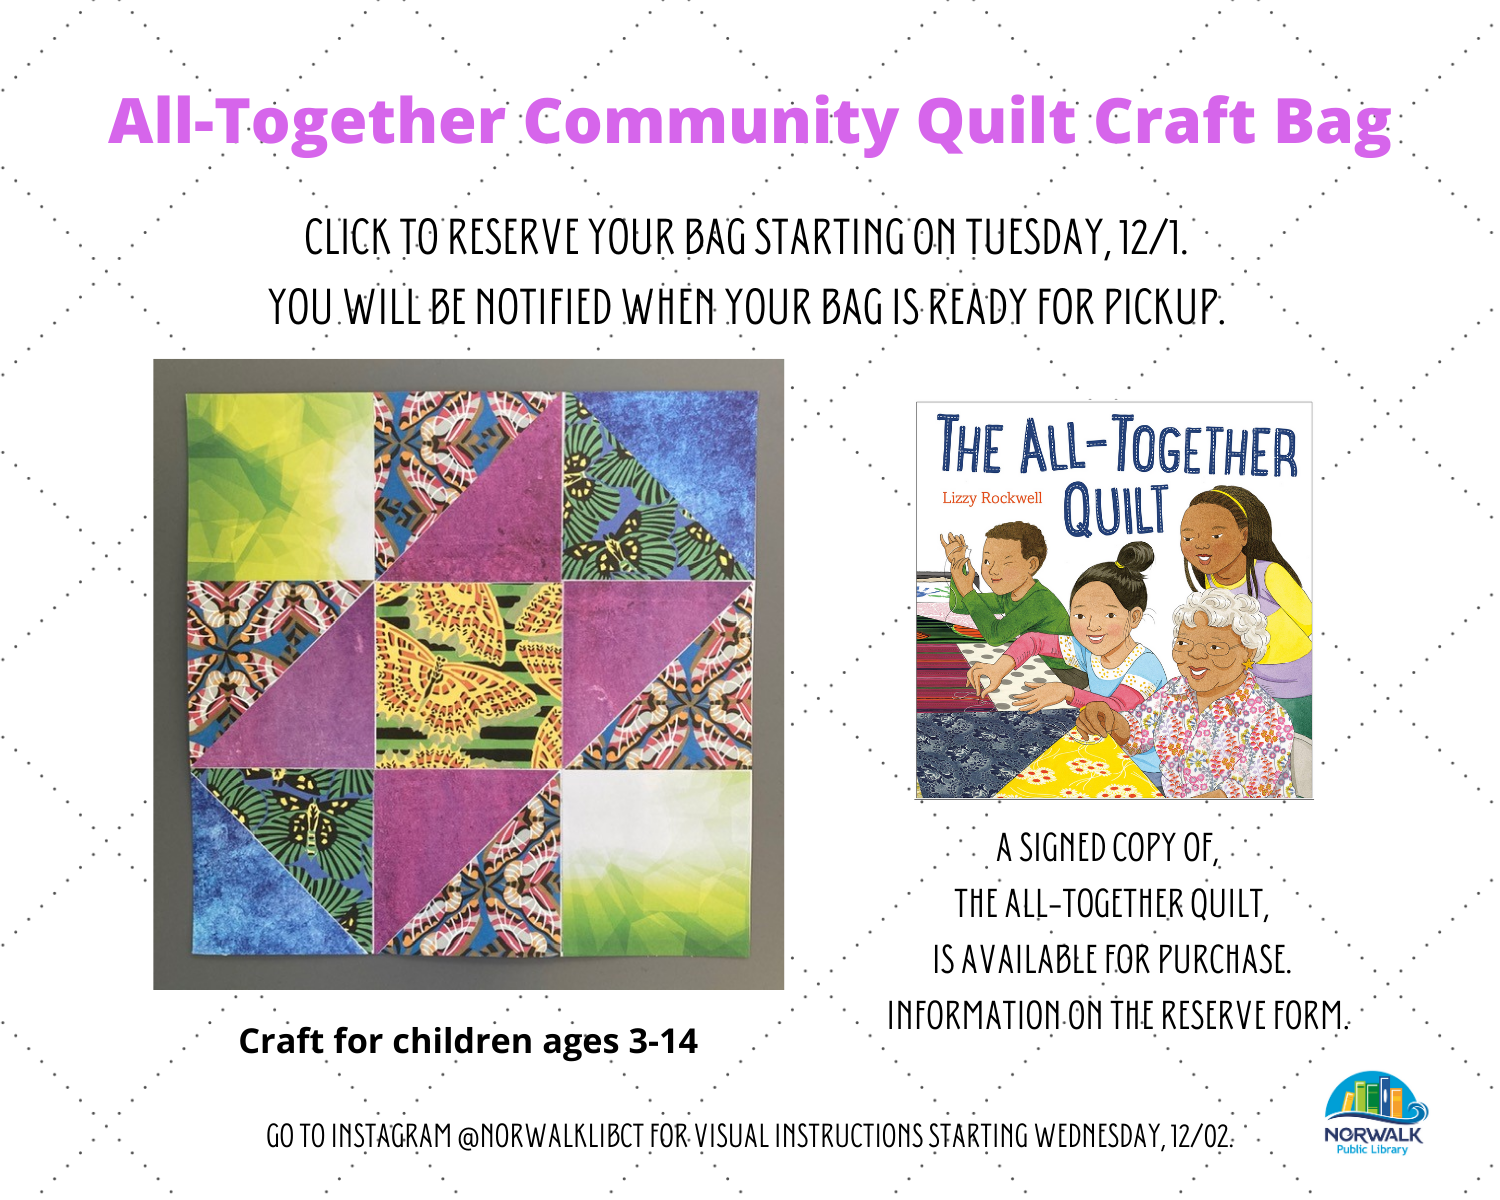 All-Together Quilt Craft Bag